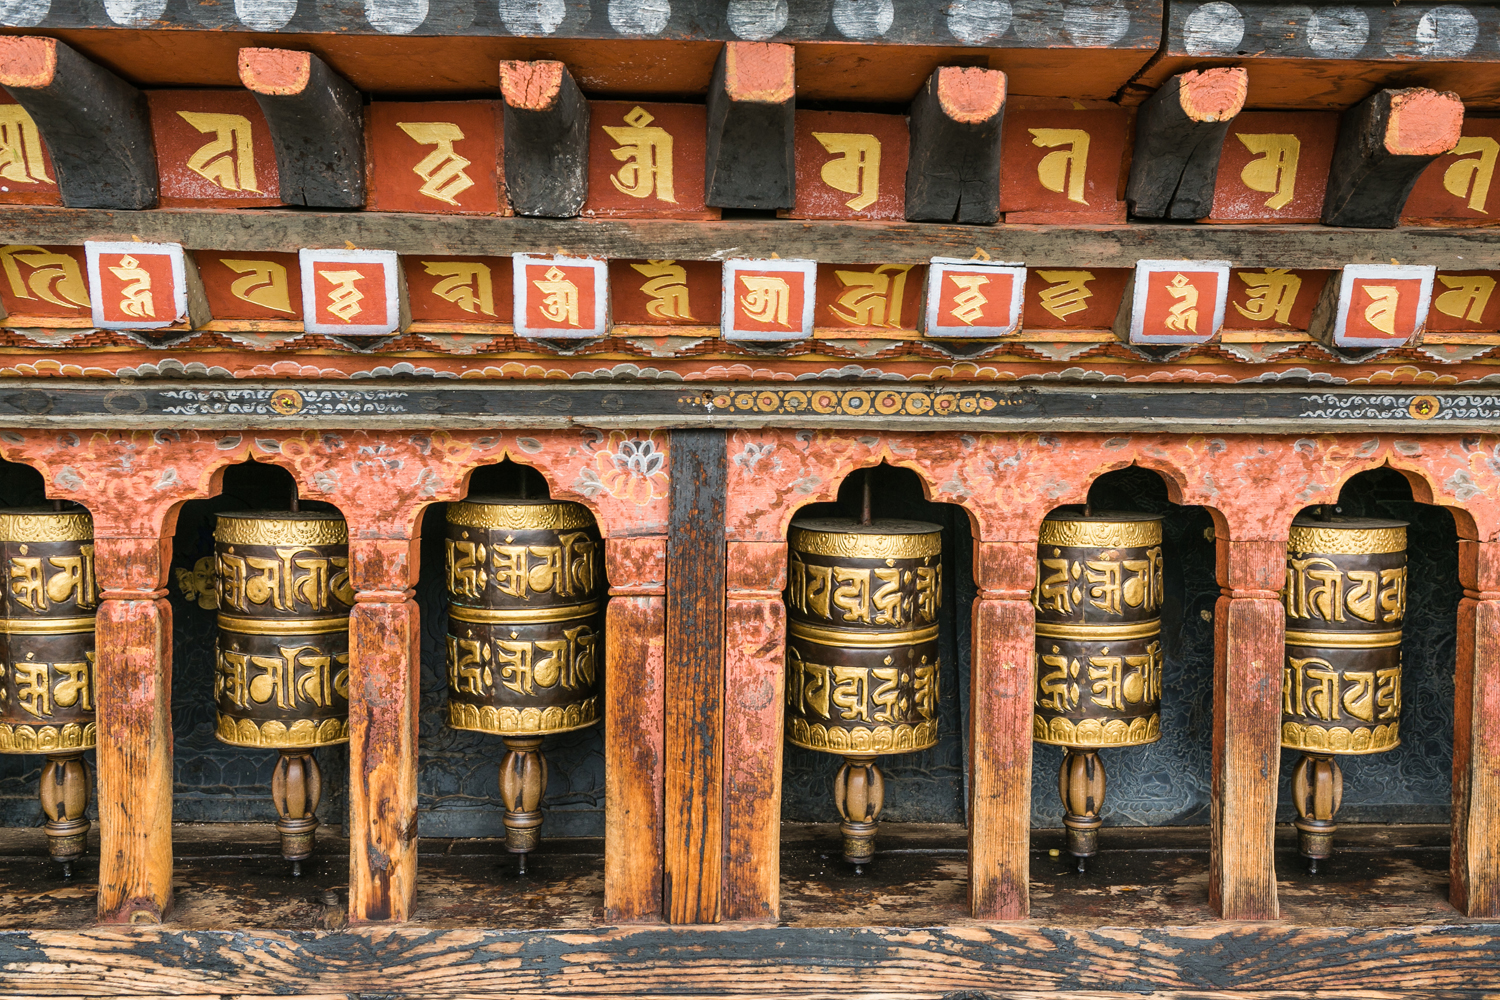 A row of prayer wheels in Thimphu